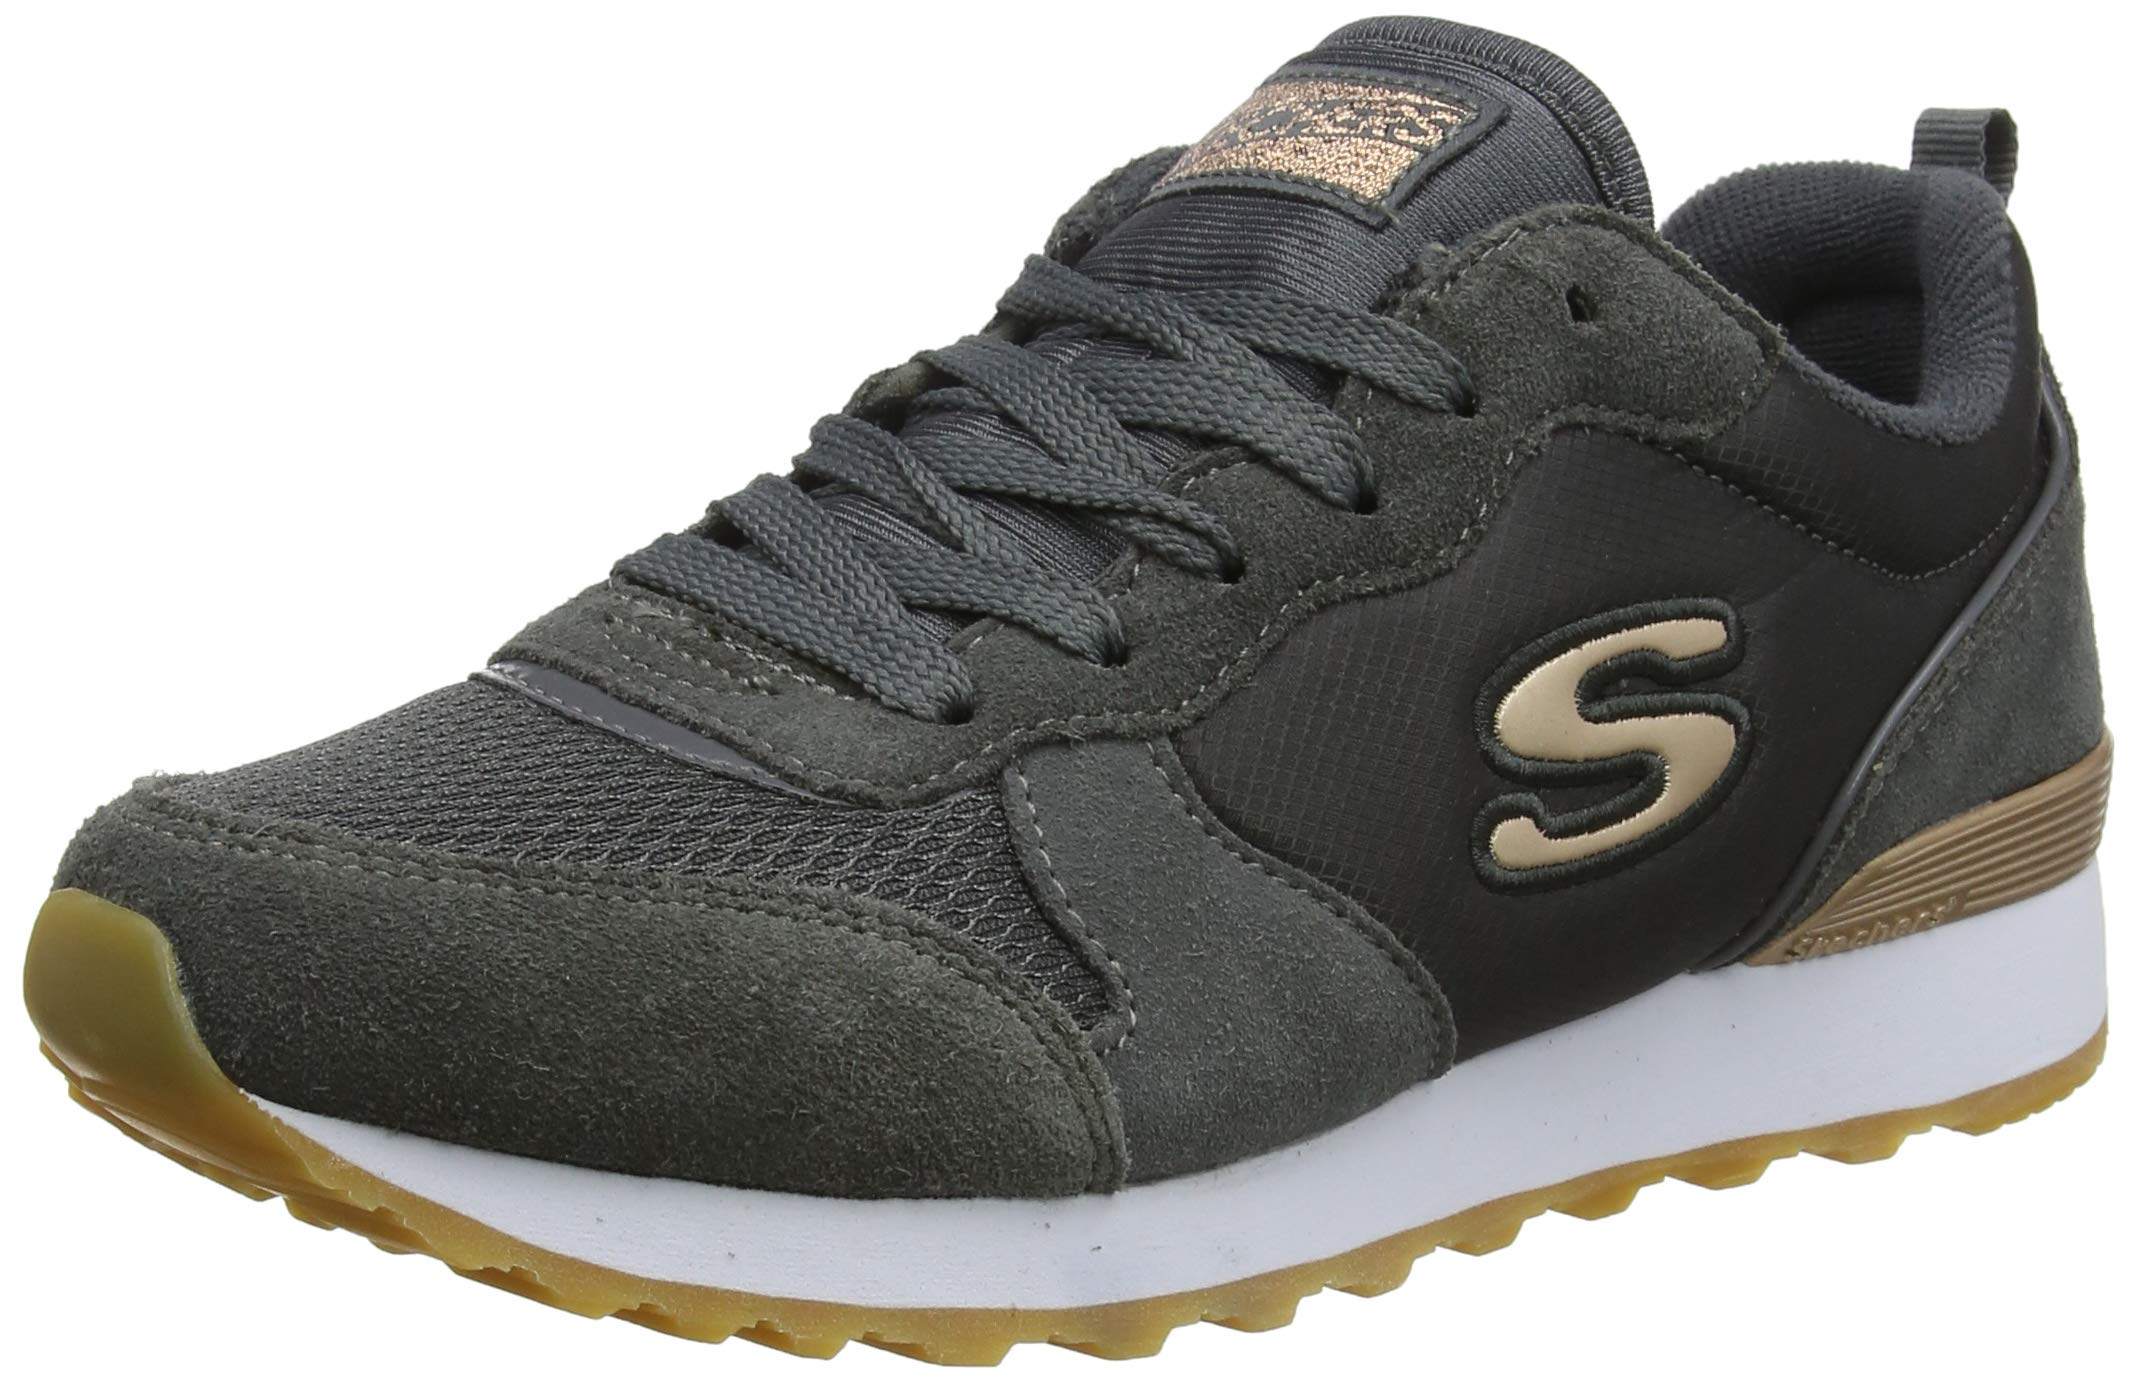 aves de corral Espolvorear director  Skechers Women's RETROS-OG 85-GOLDN GURL Trainers - Buy Online in Burundi.  | [missing {{category}} value] Products in Burundi - See Prices, Reviews  and Free Delivery over 128,000 FBu | Desertcart